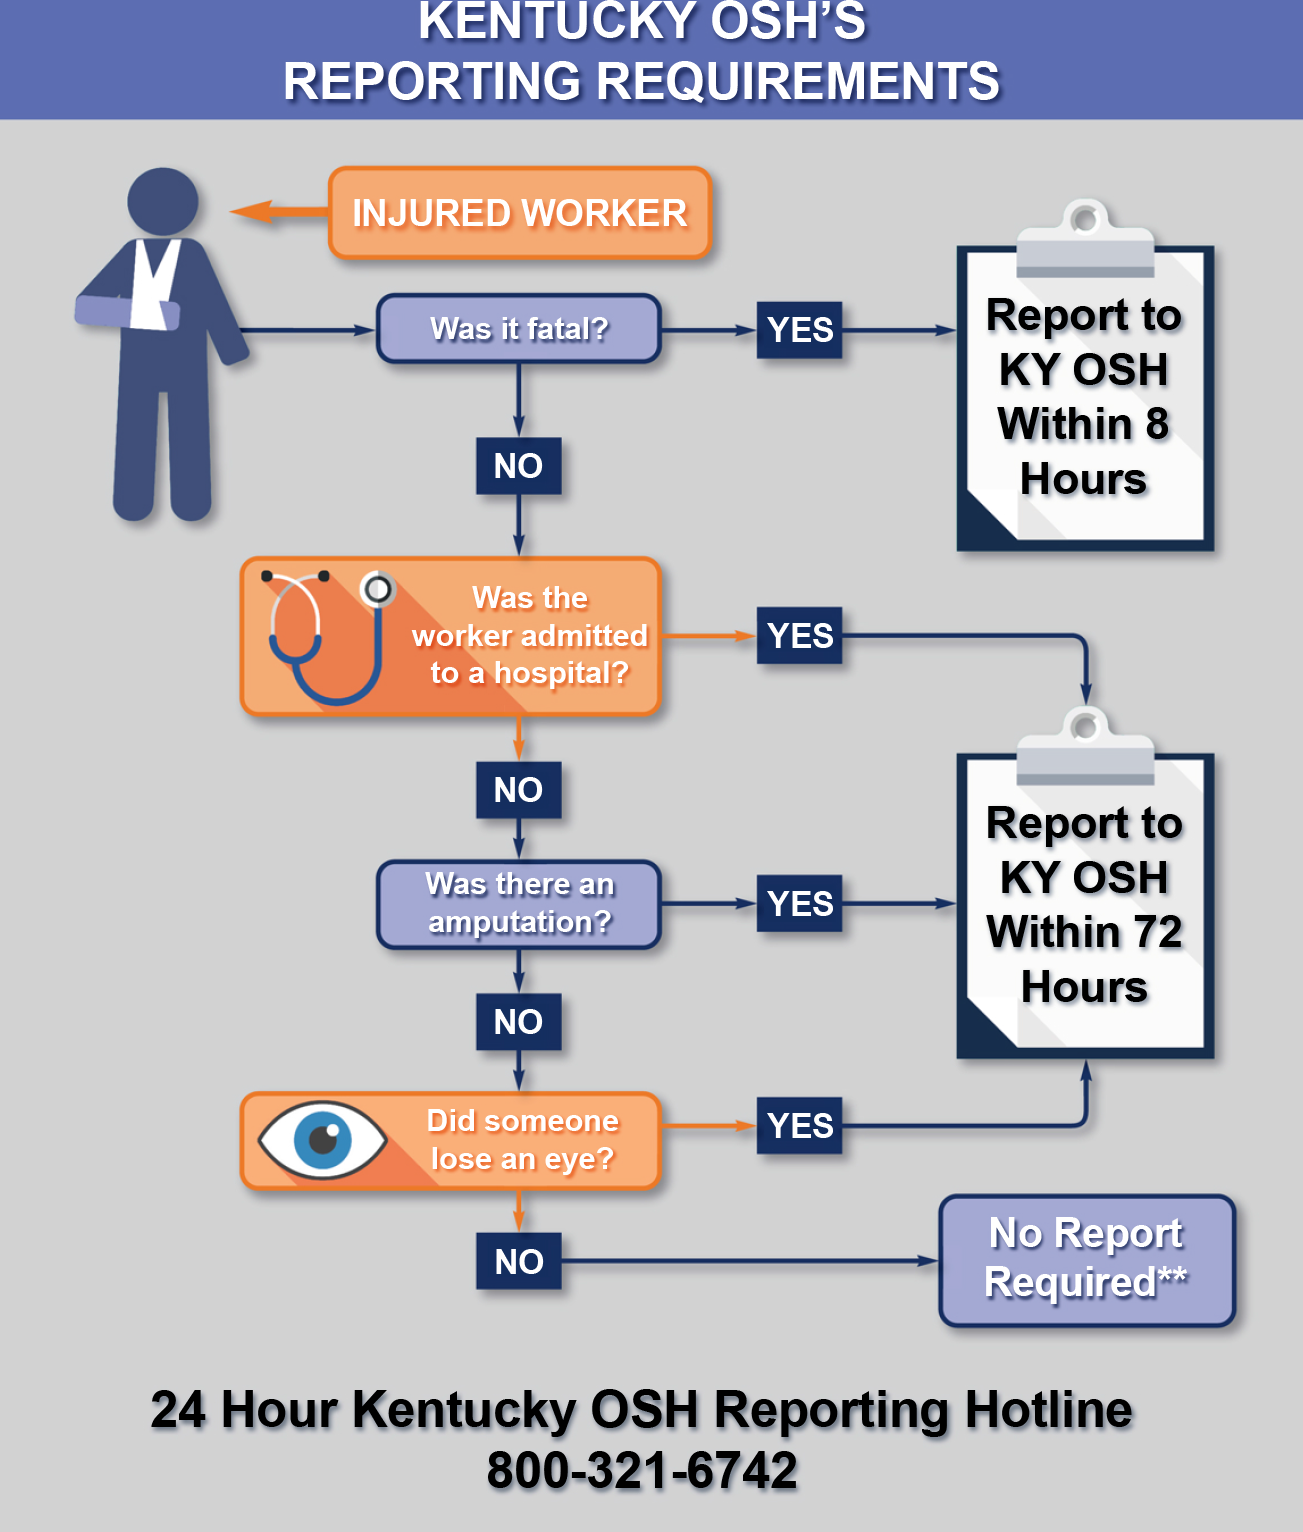 Kentucky OSH's Reporting Requirements